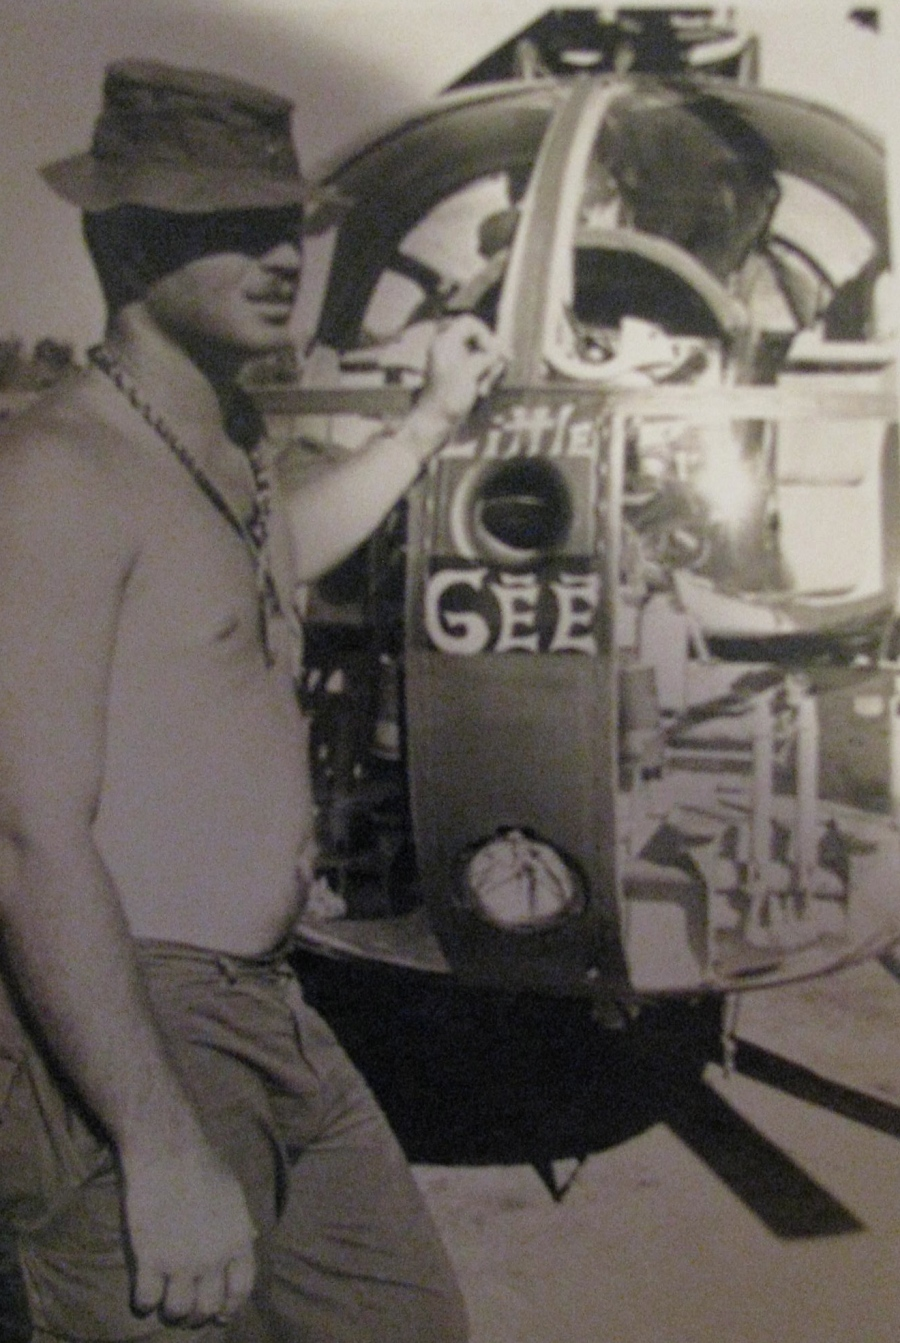 Berryman was a 20-year-old member of the Ames' crew when she sailed for Southeast Asia and the war in Vietnam. Photo providedxx